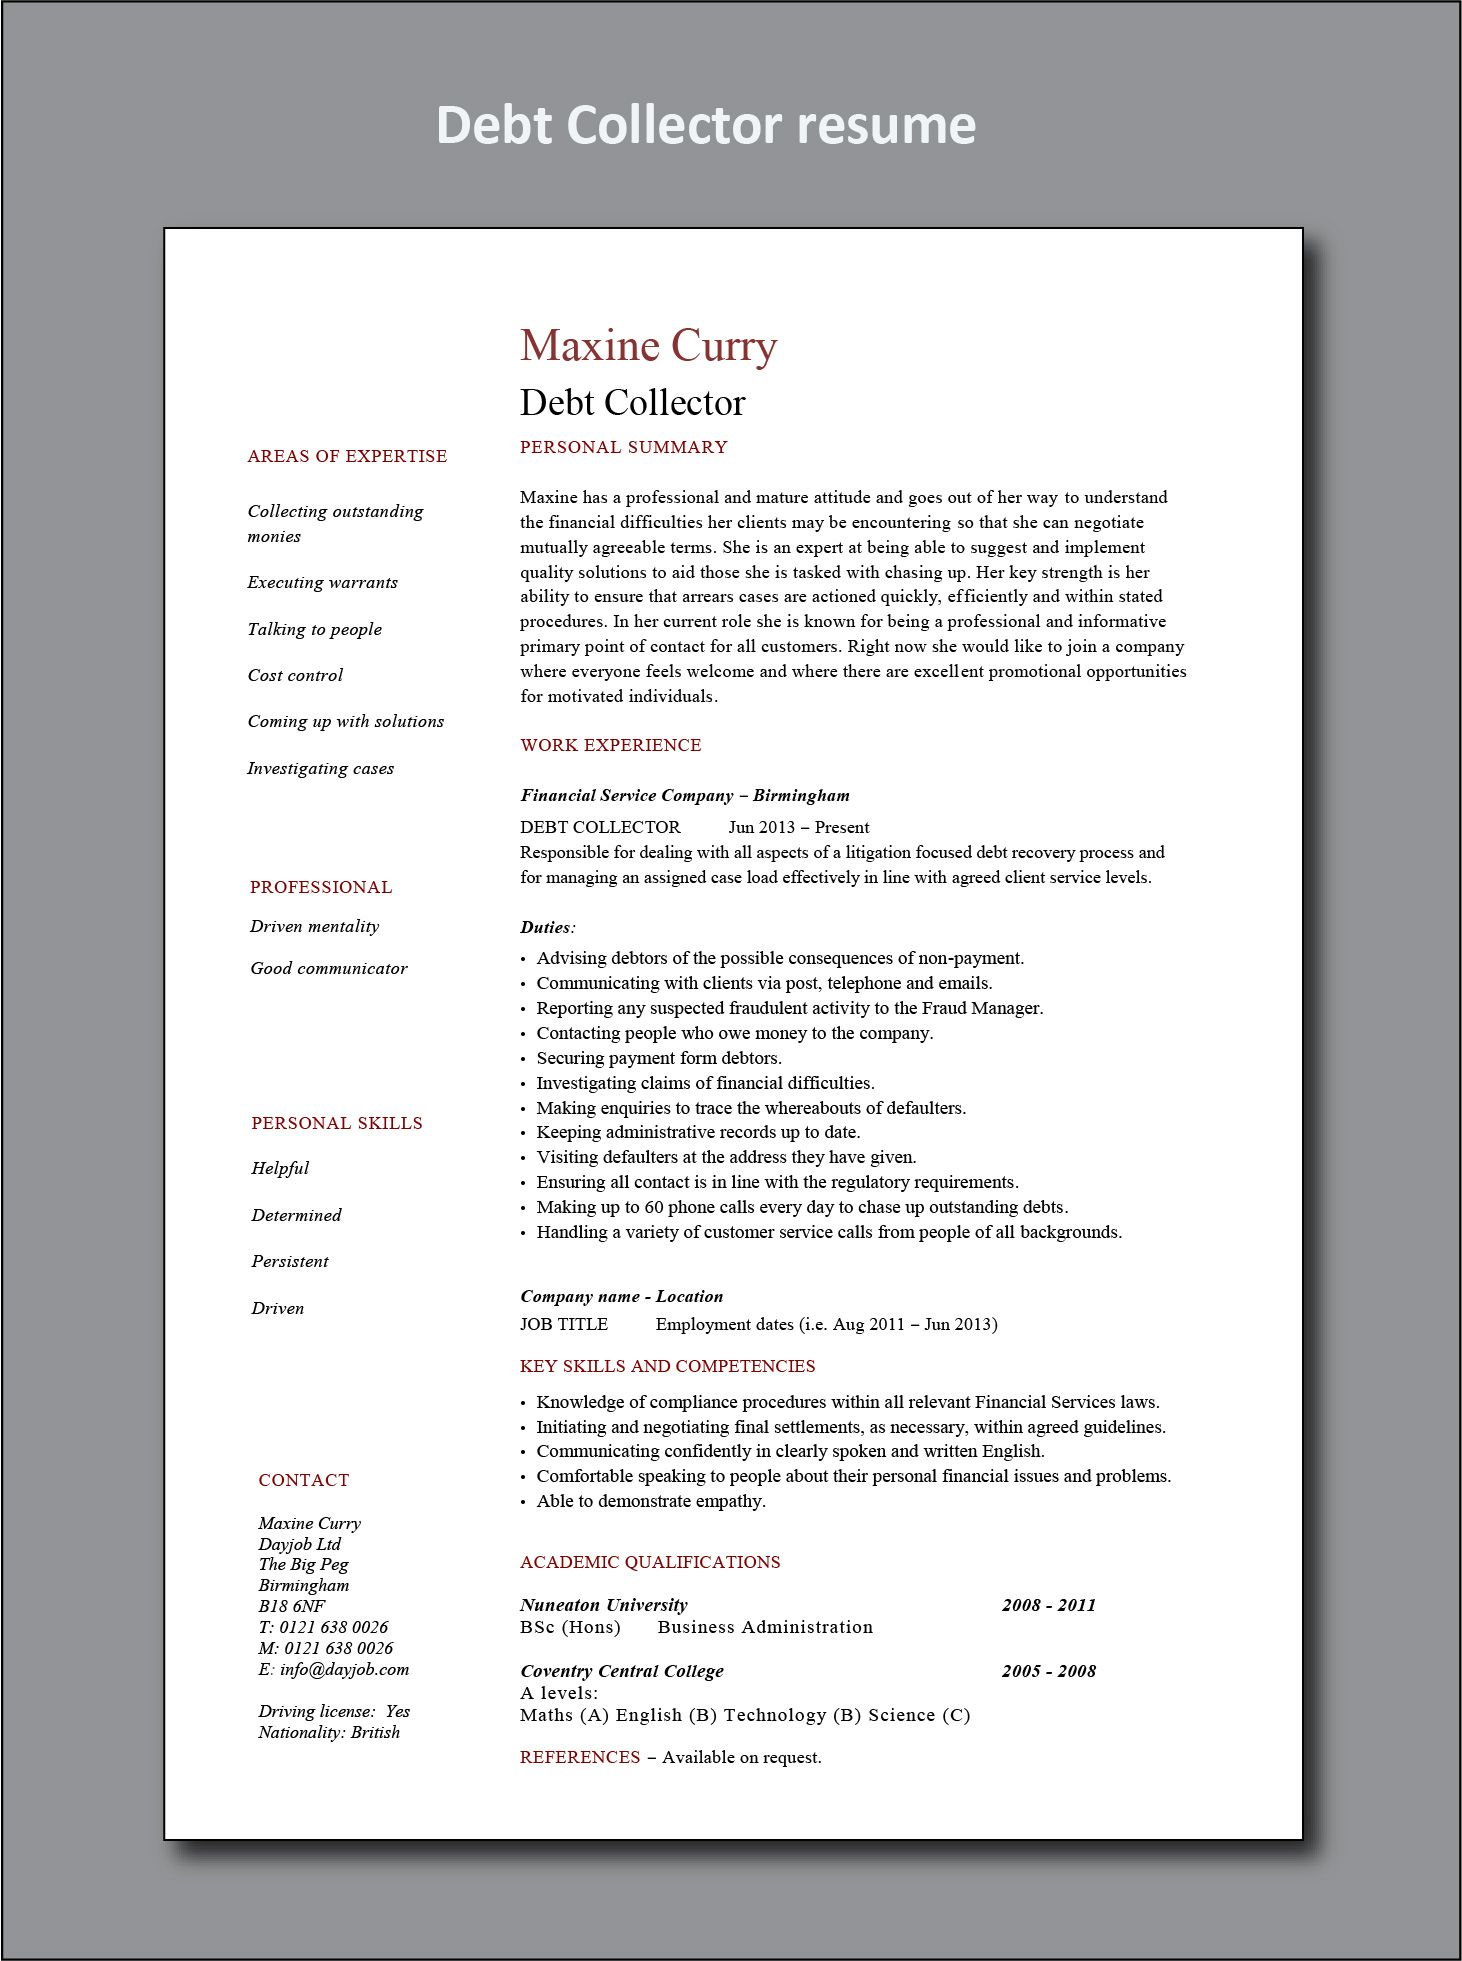 Debt Collector Resume Example Project Manager Resume Office Manager Resume Manager Resume